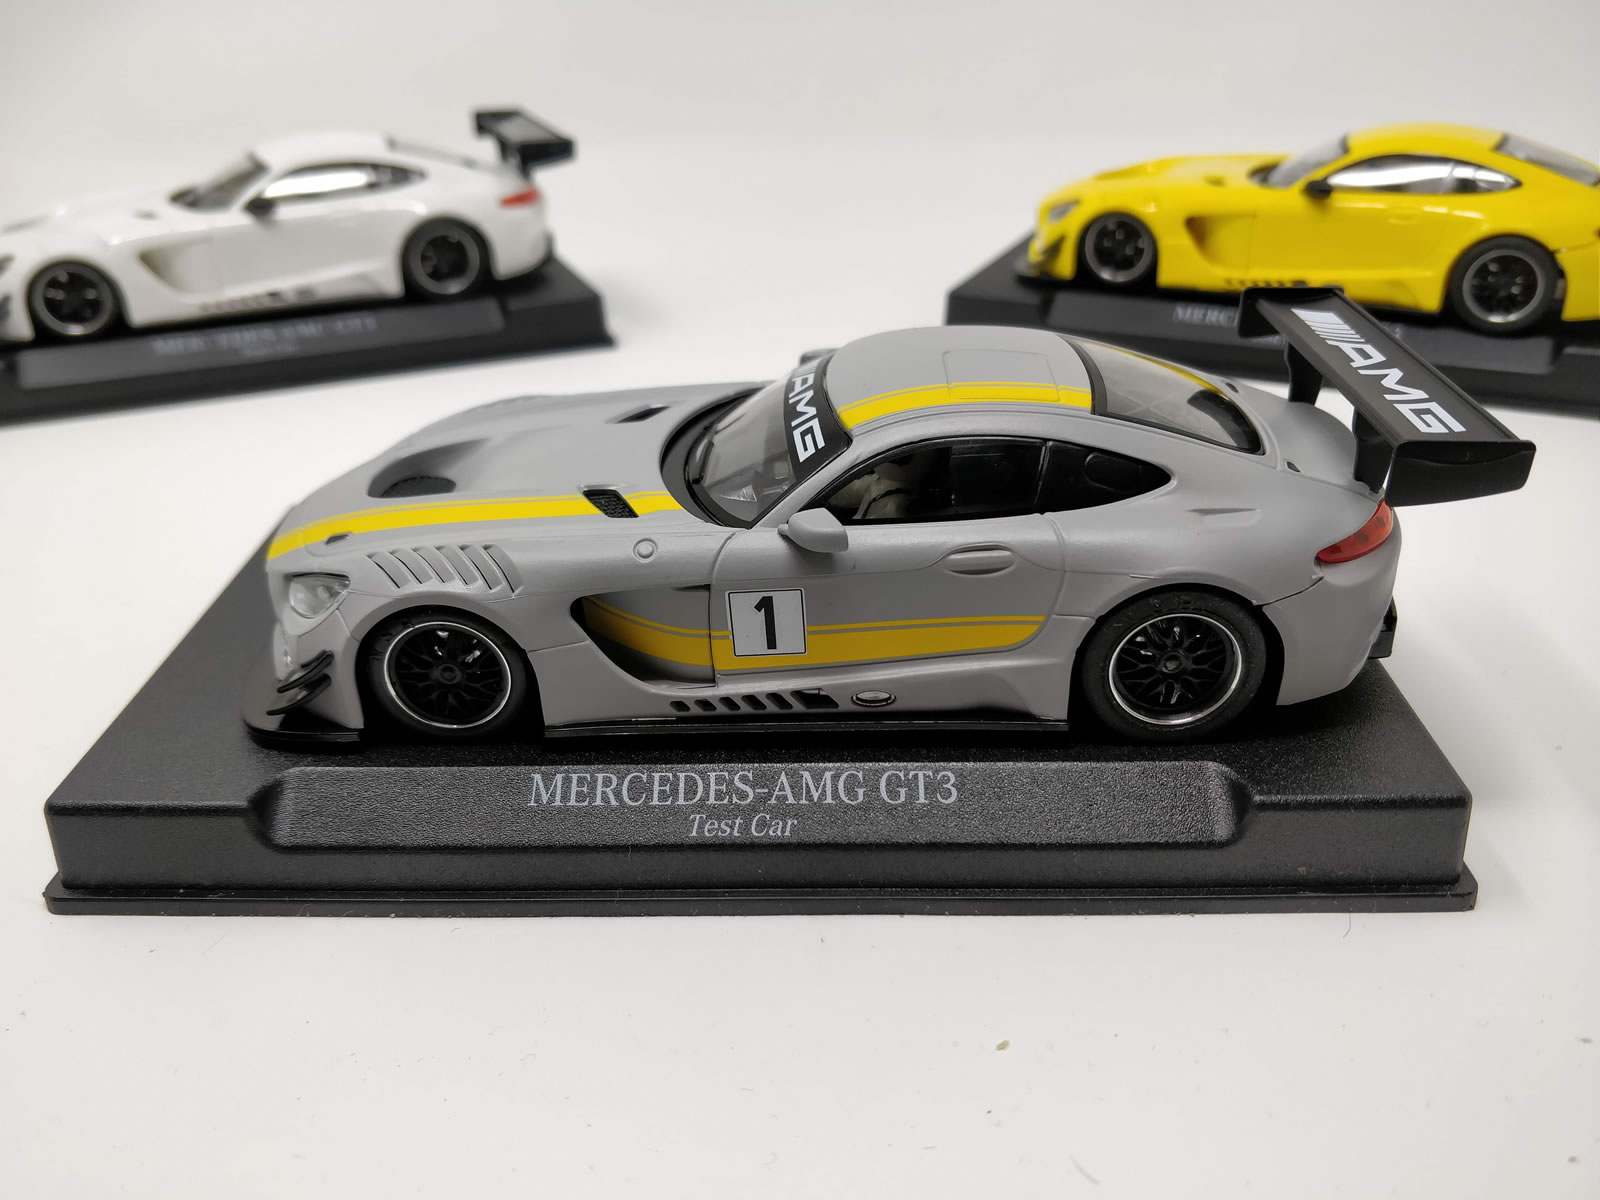 Mercedes AMG GT3 version test car